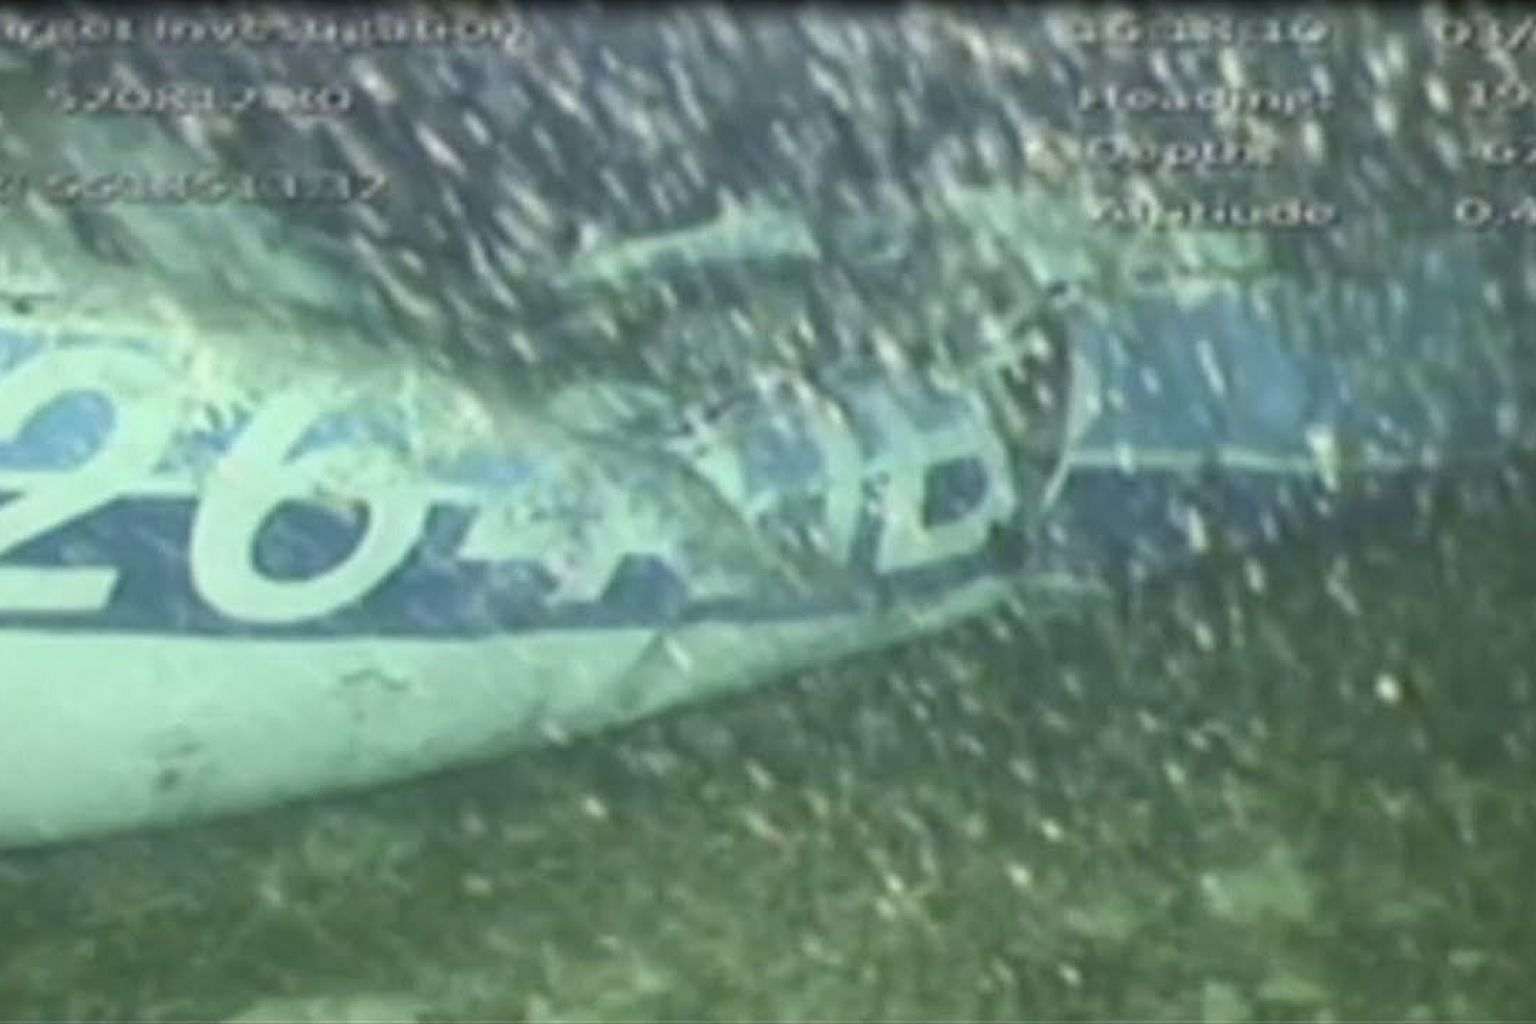 Body found in Sala plane wreckage, AAIB confirm